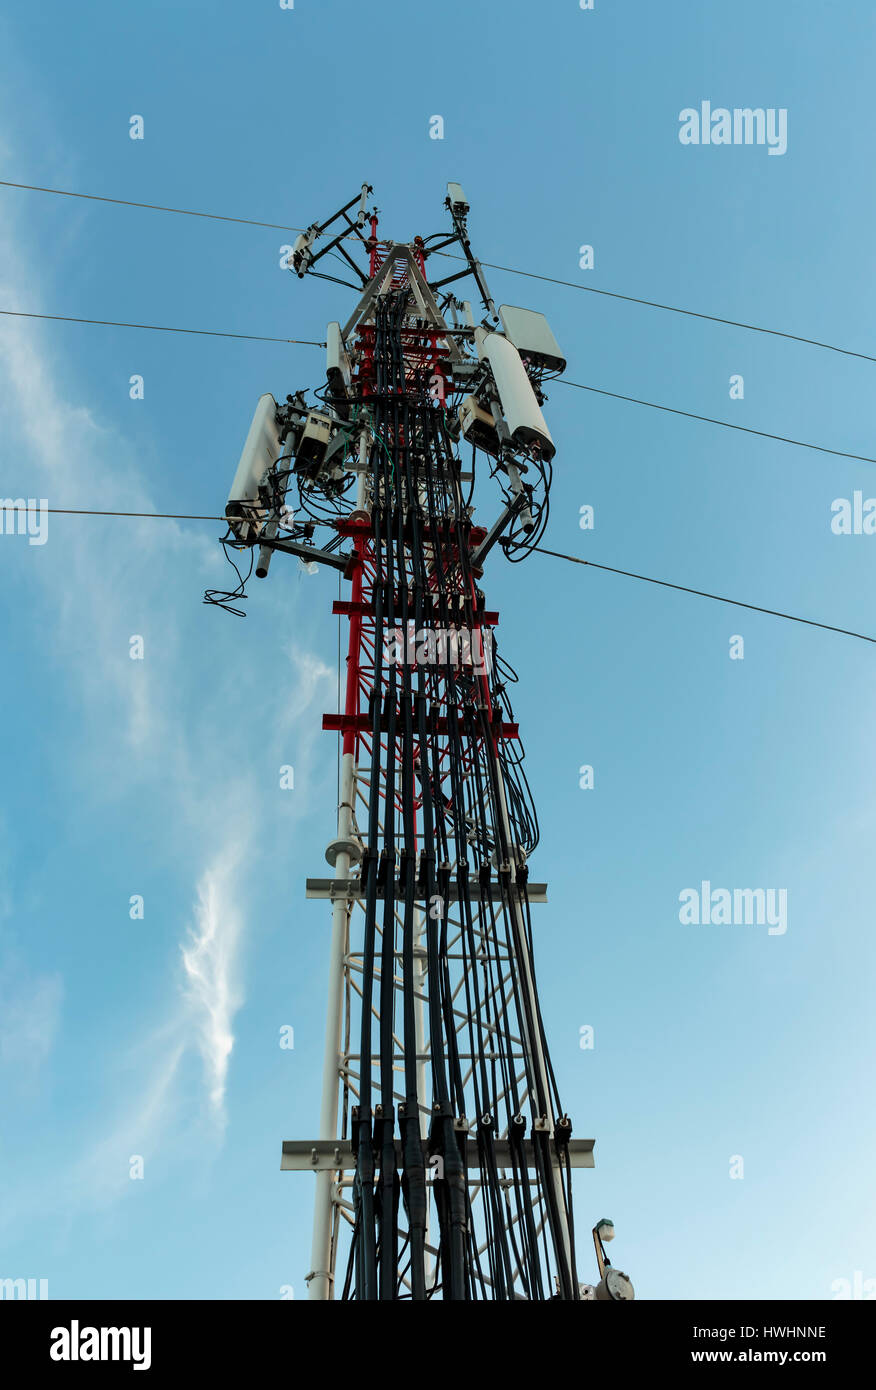 Signal Tower phone and sky background - Stock Image